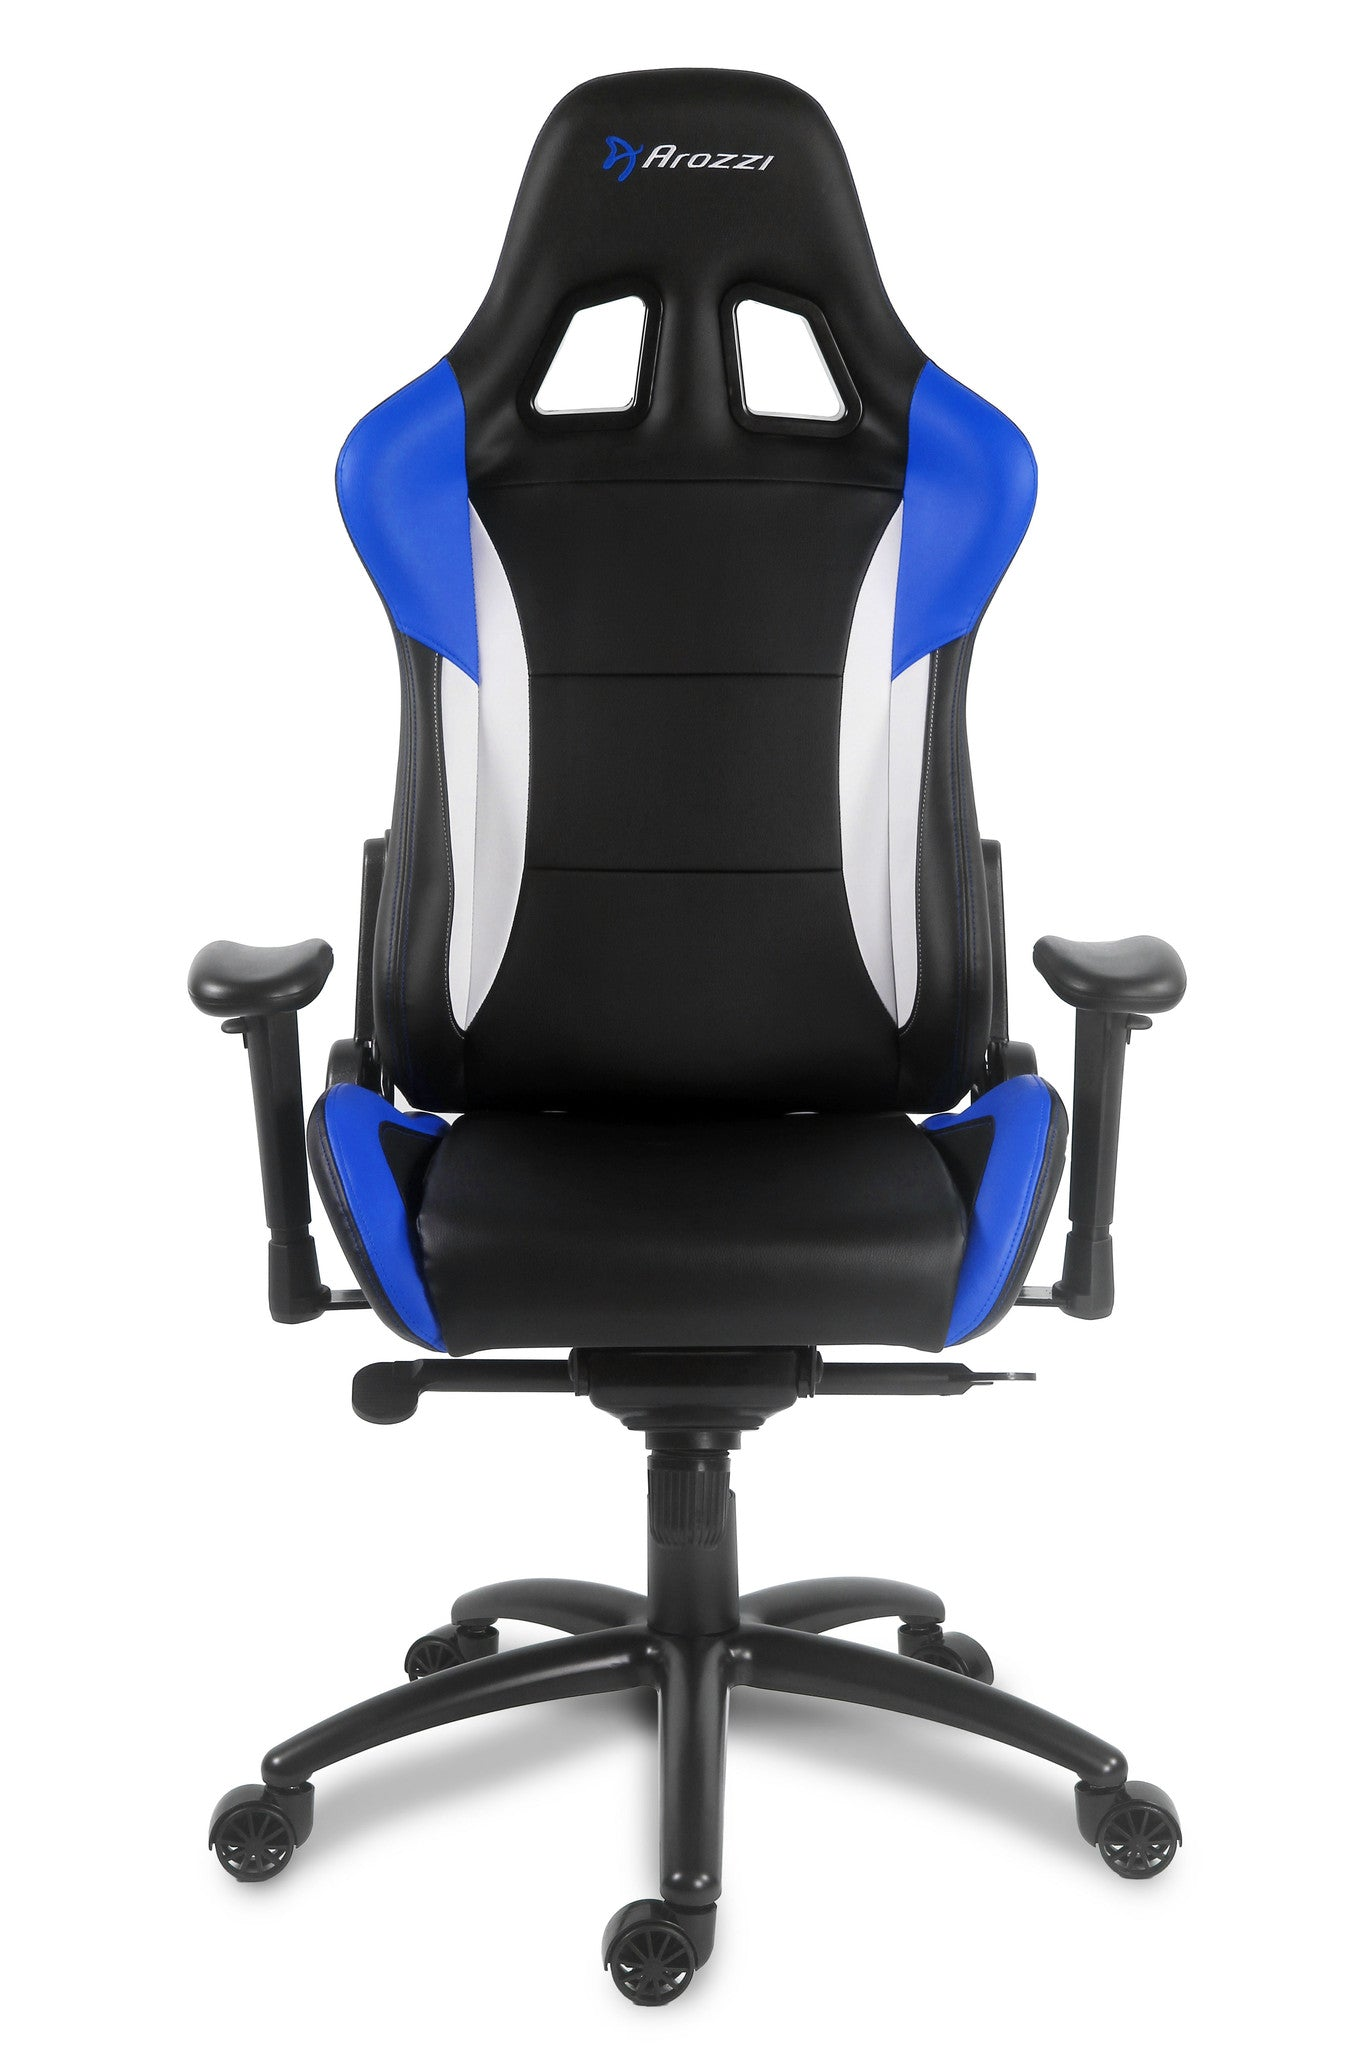 PC Gaming Chairs from DXRacer Vertagear Arozzi Clutch Chairz more